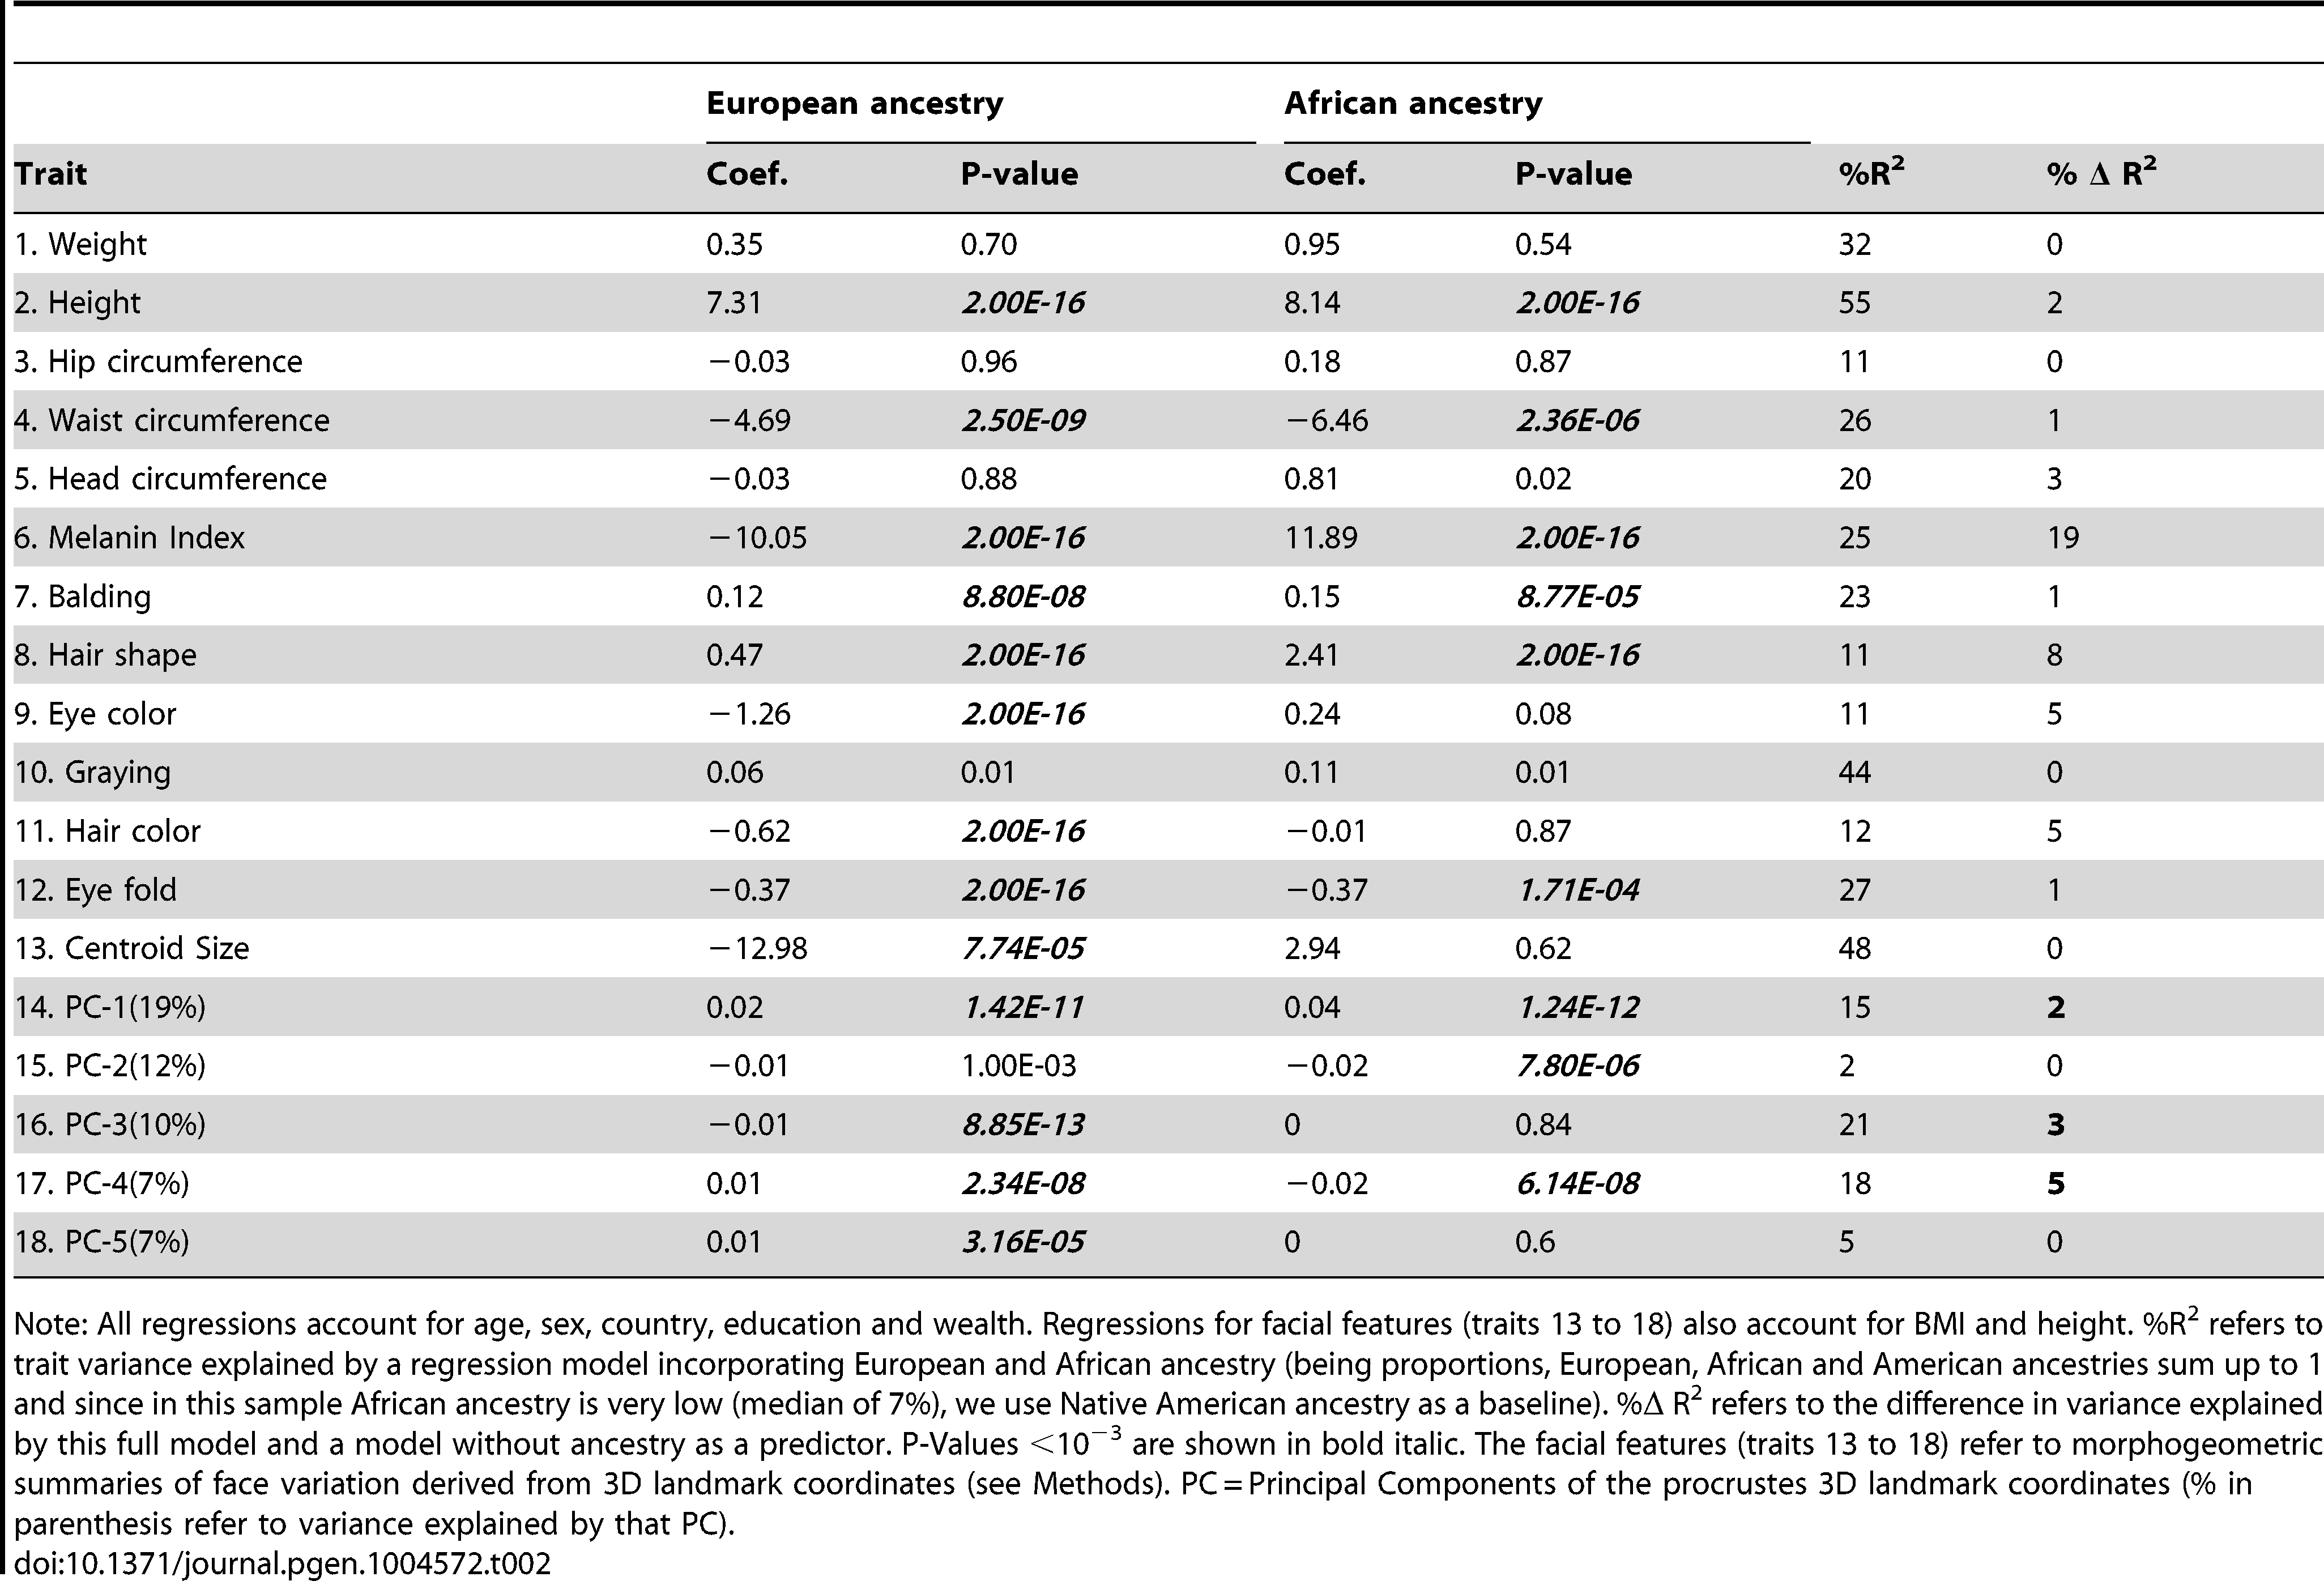 Multiple linear regression of physical appearance traits on European and African ancestry.